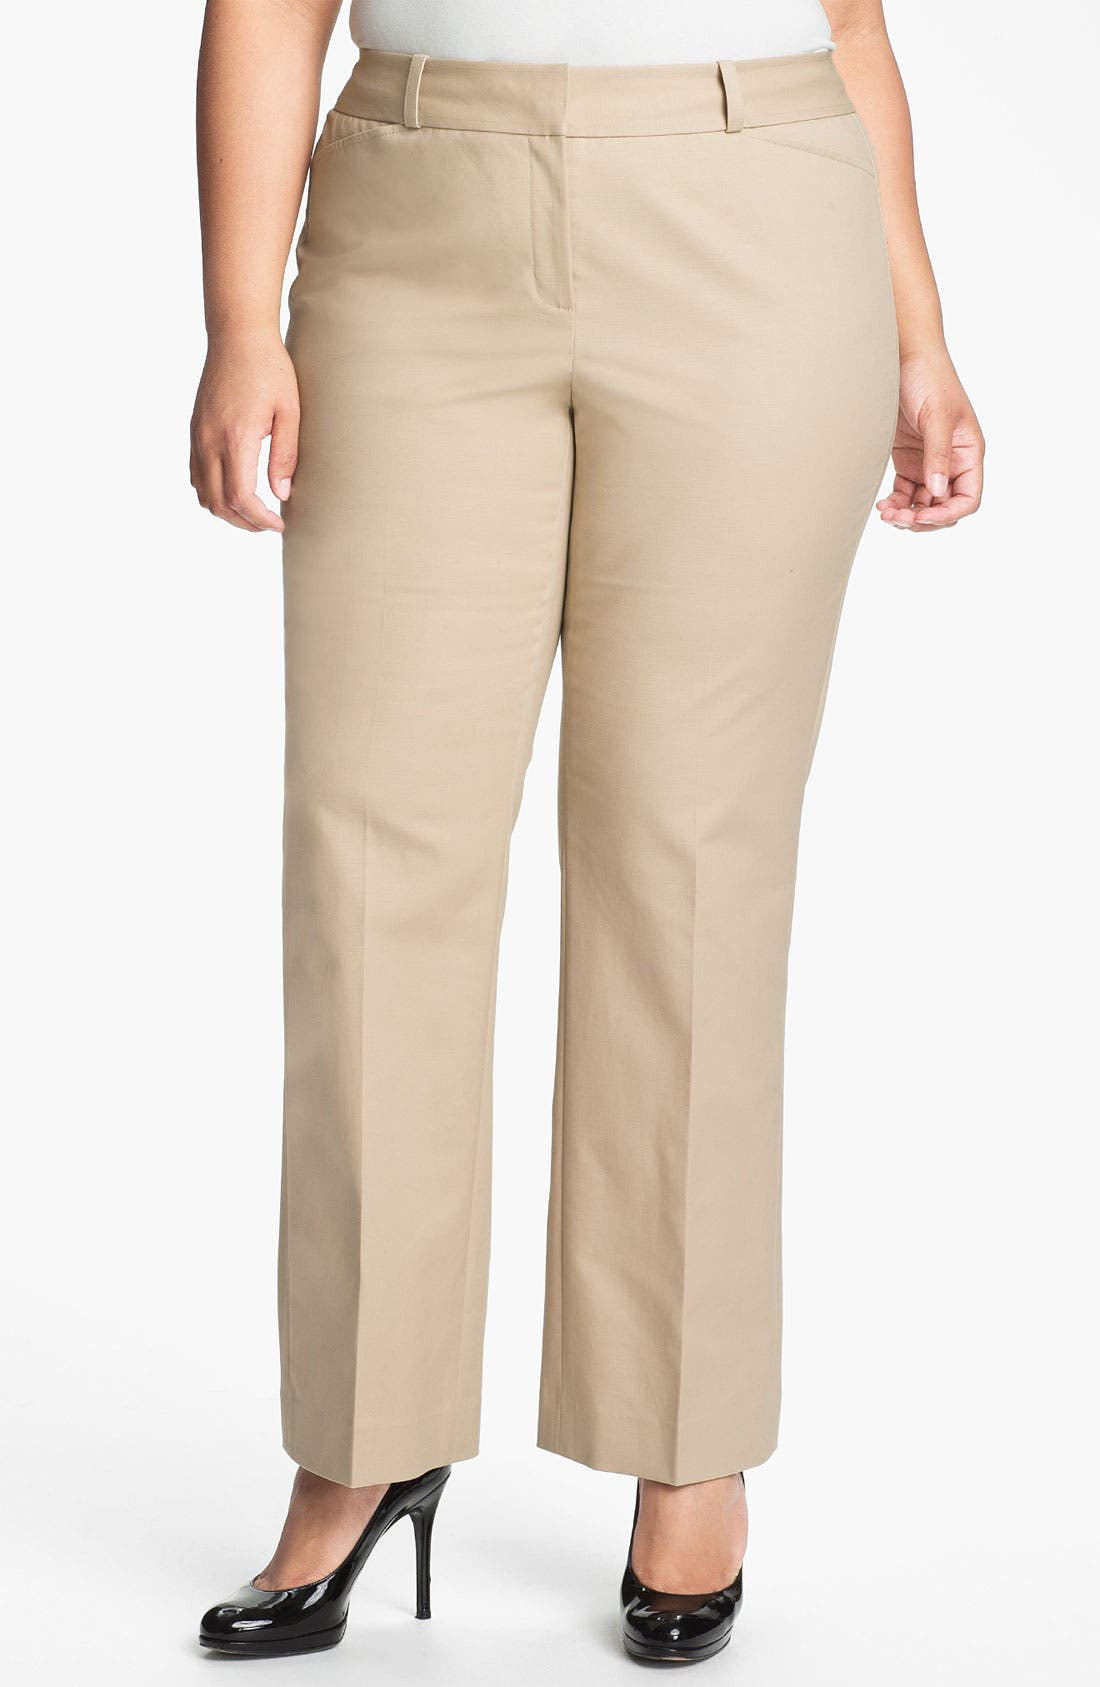 Alternate Image 1 Selected - Sejour Stretch Cotton Pants (Plus Size)